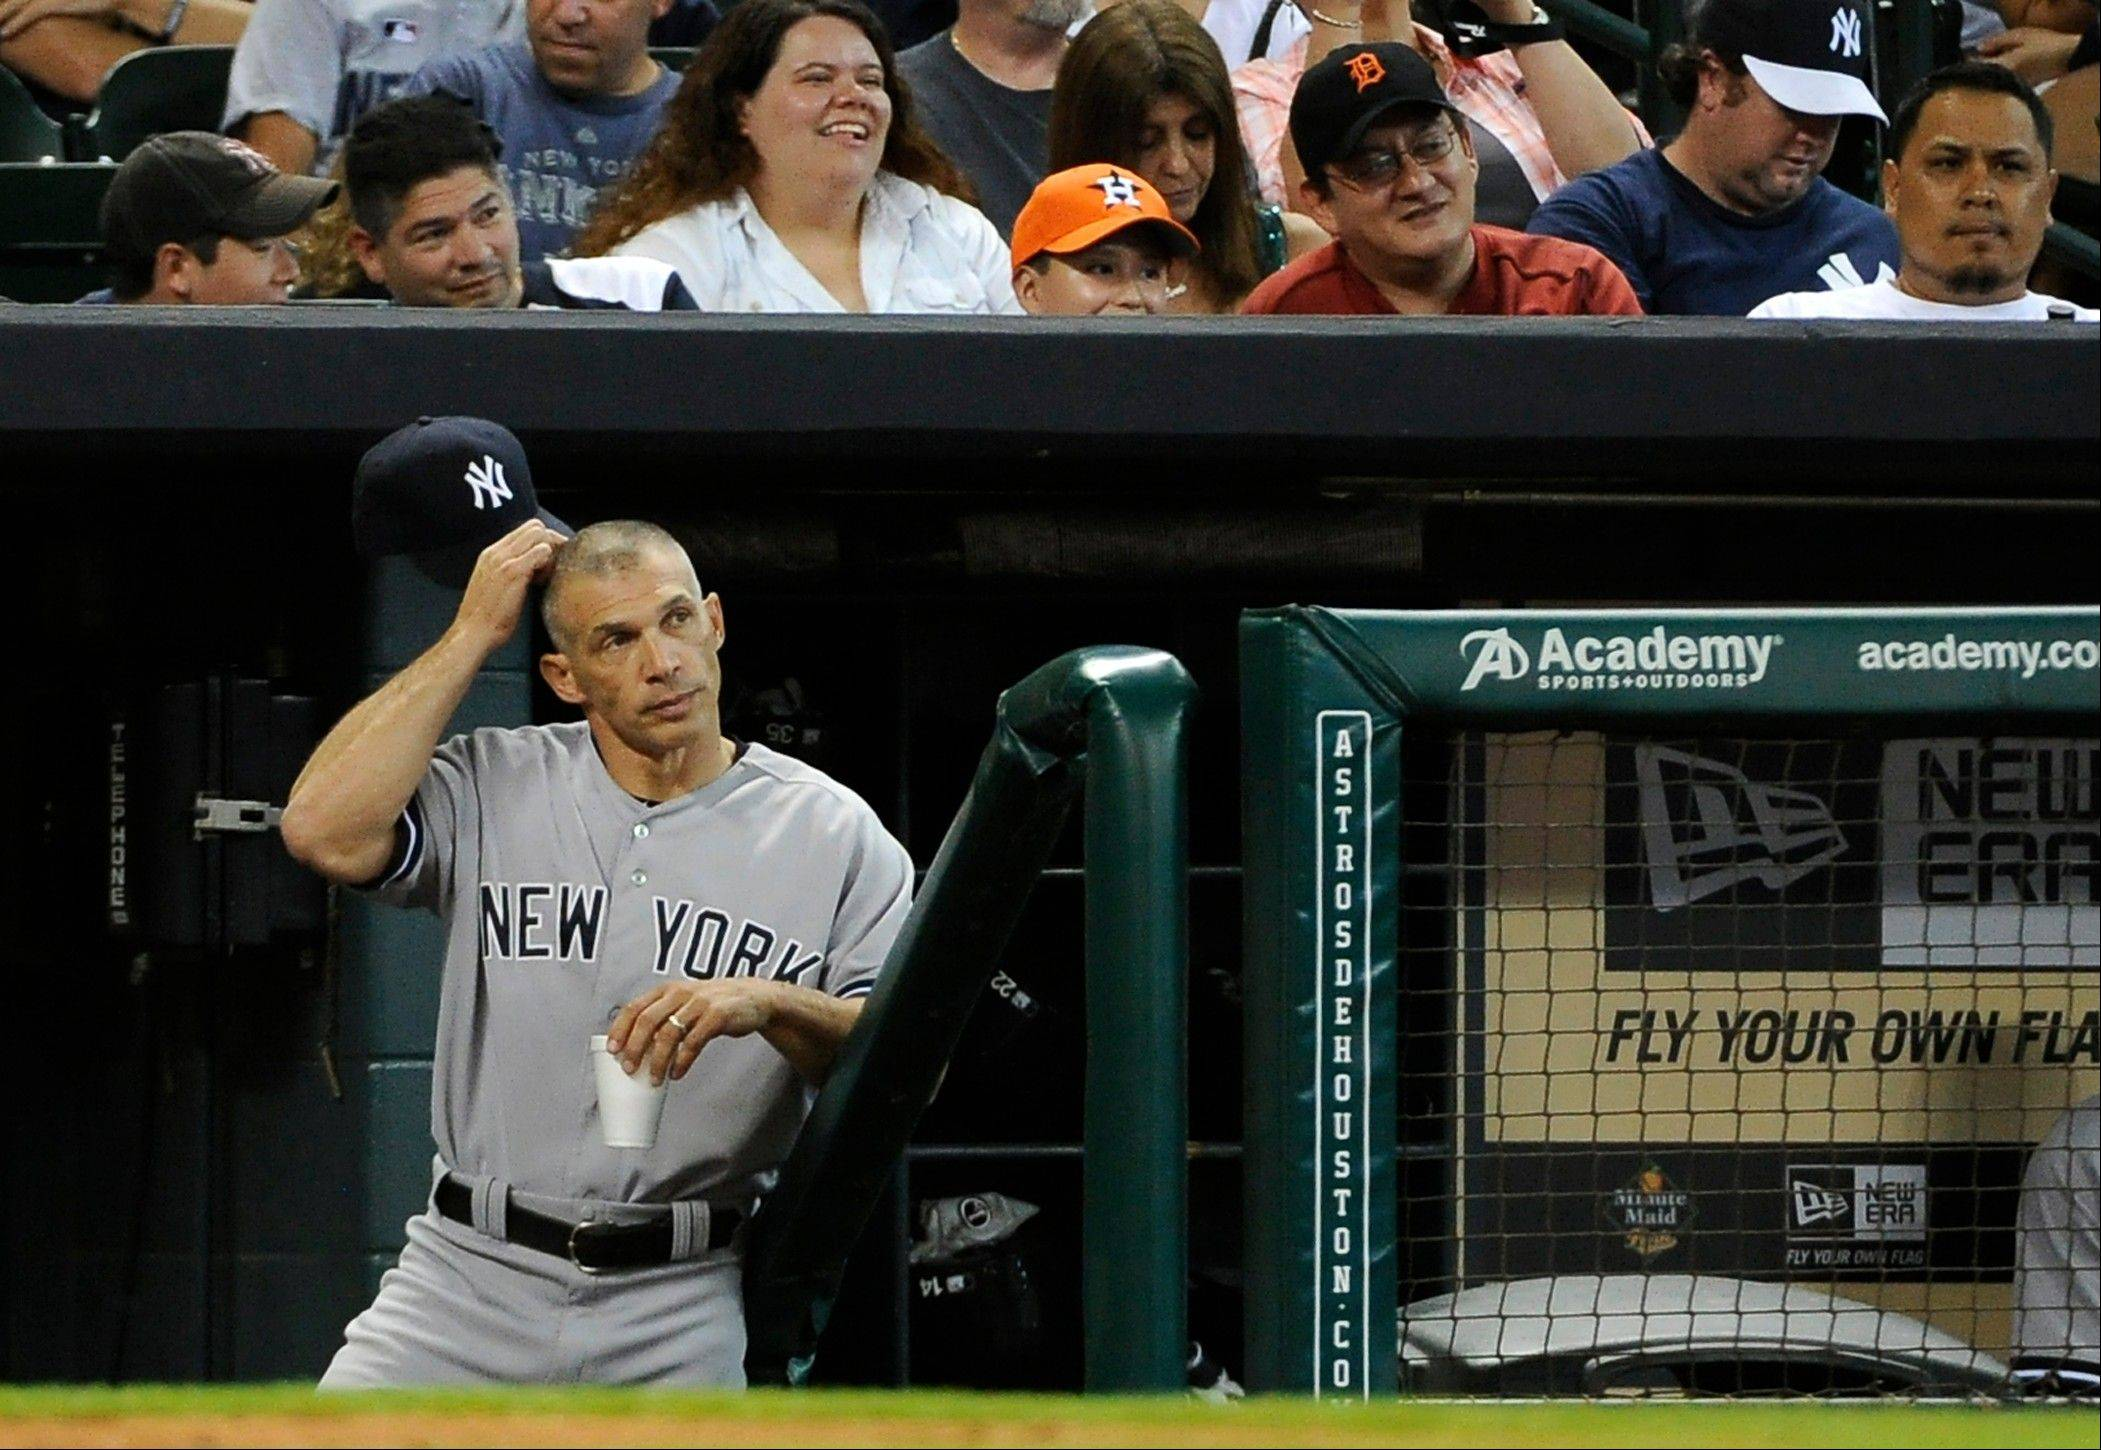 Associated Press According to a New York report, the Yankees will not allow the Cubs to talk with manager Joe Girardi while he remains under contract. Girardi's contract expires Nov. 1, but GM Brian Cashman says he wants Girardi to stay.